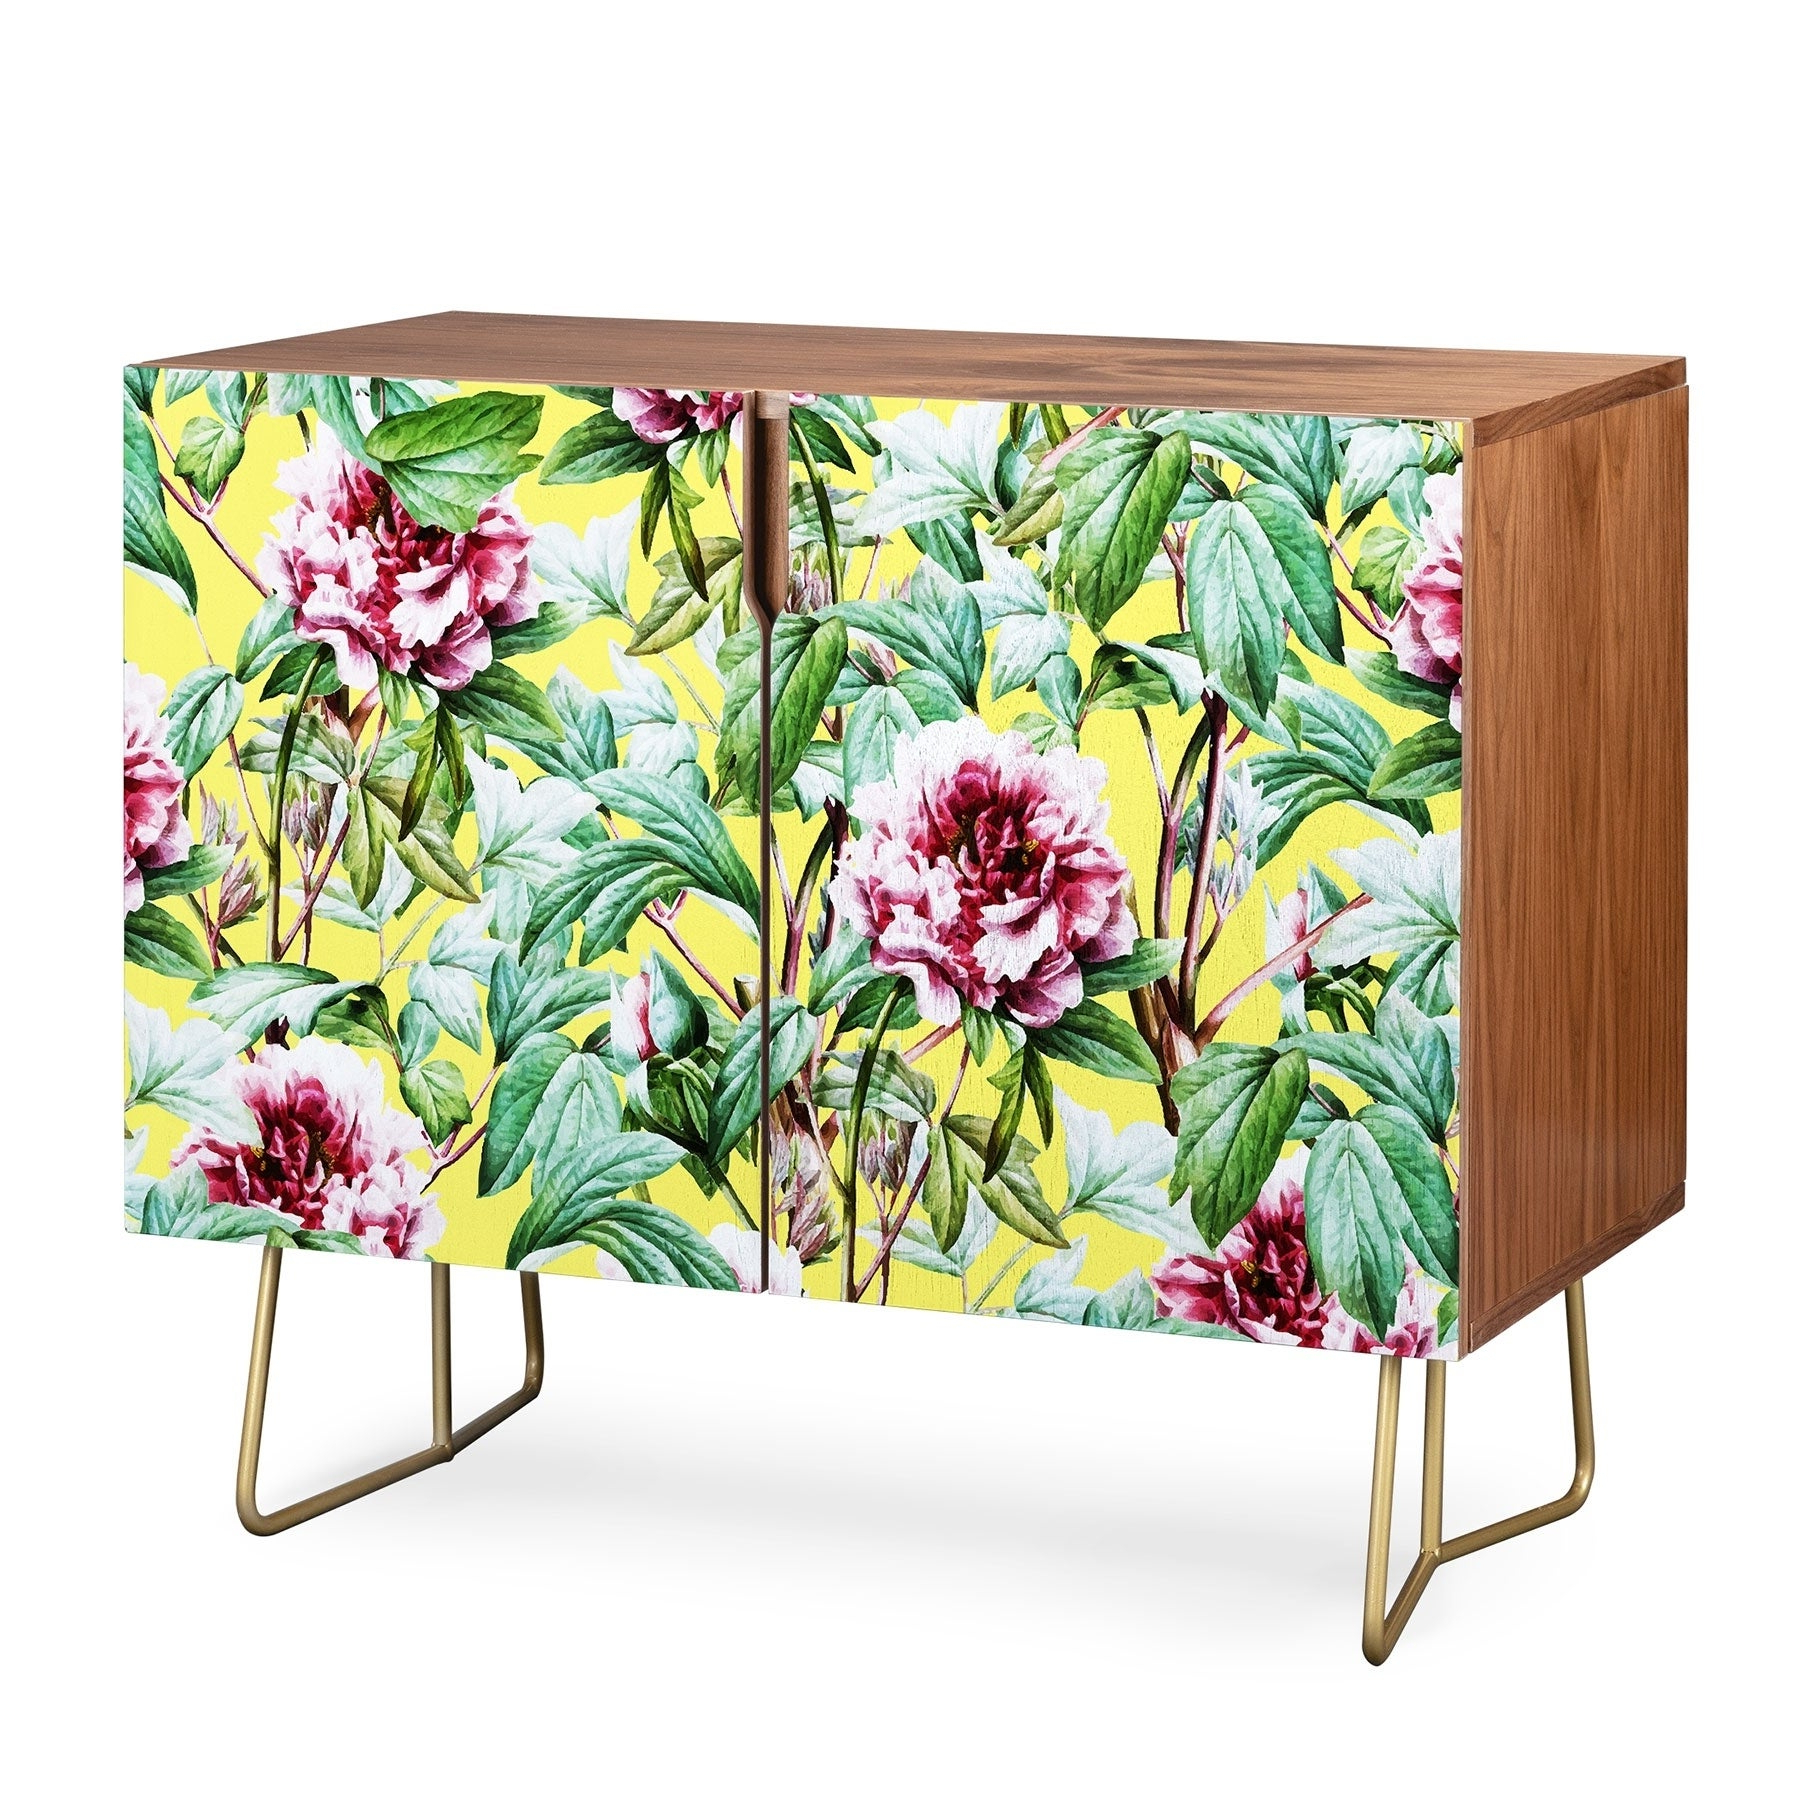 Deny Designs Yellow Flora Credenza (Birch Or Walnut, 2 Leg Options) In Floral Blush Yellow Credenzas (View 13 of 20)